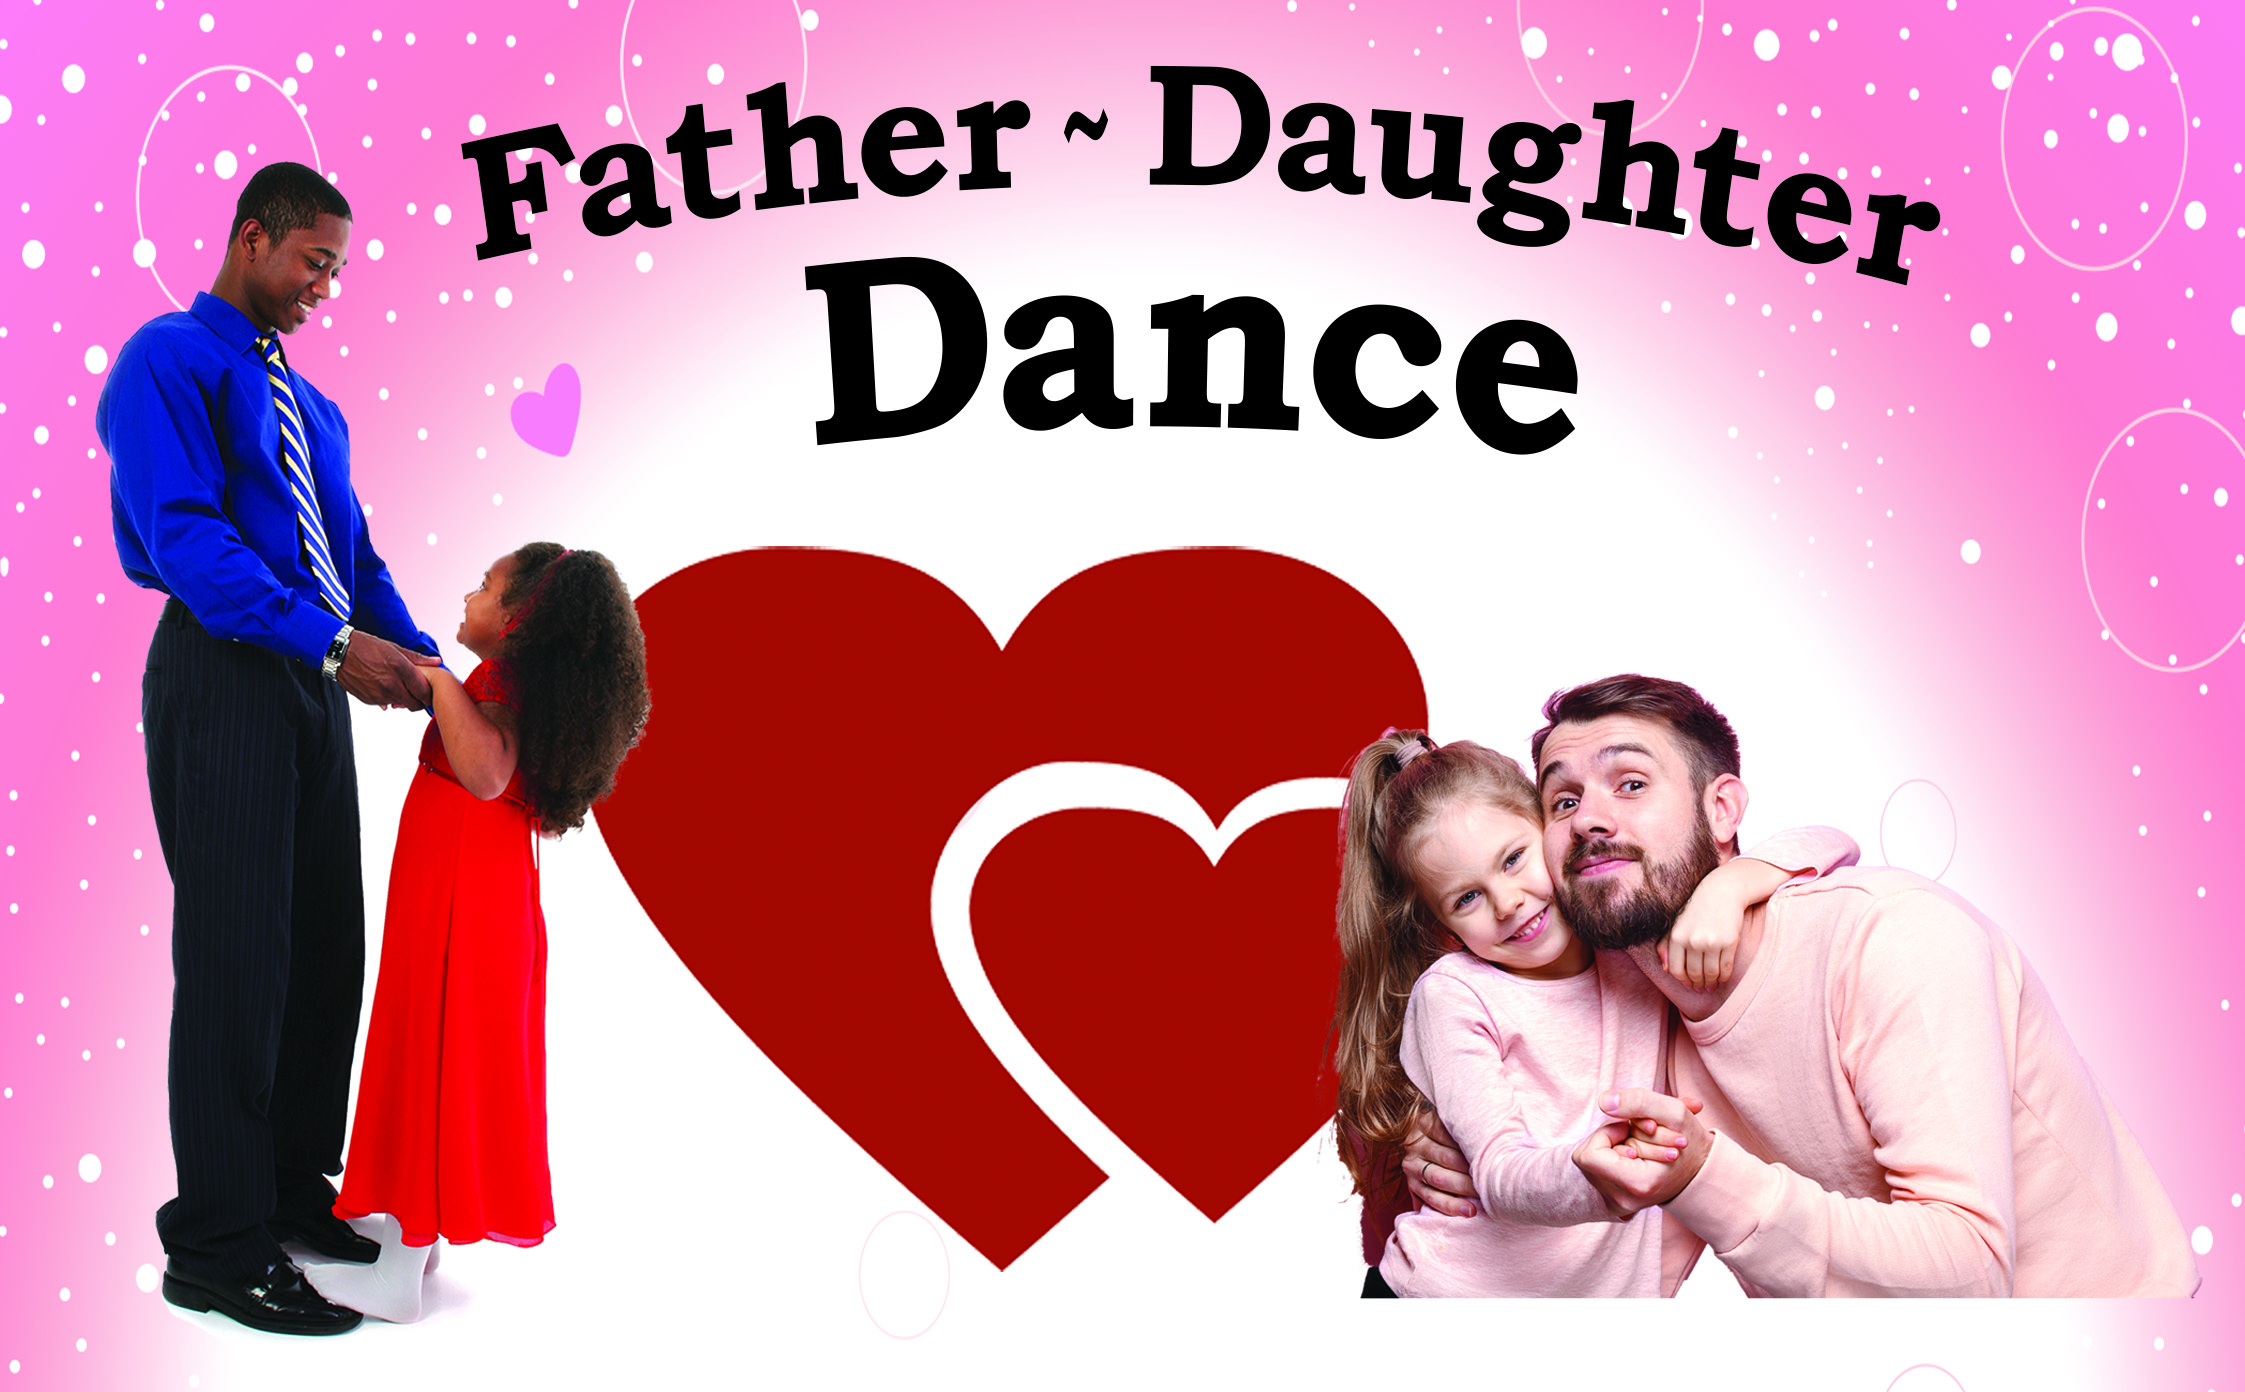 Father Daughter Dance graphic.jpg